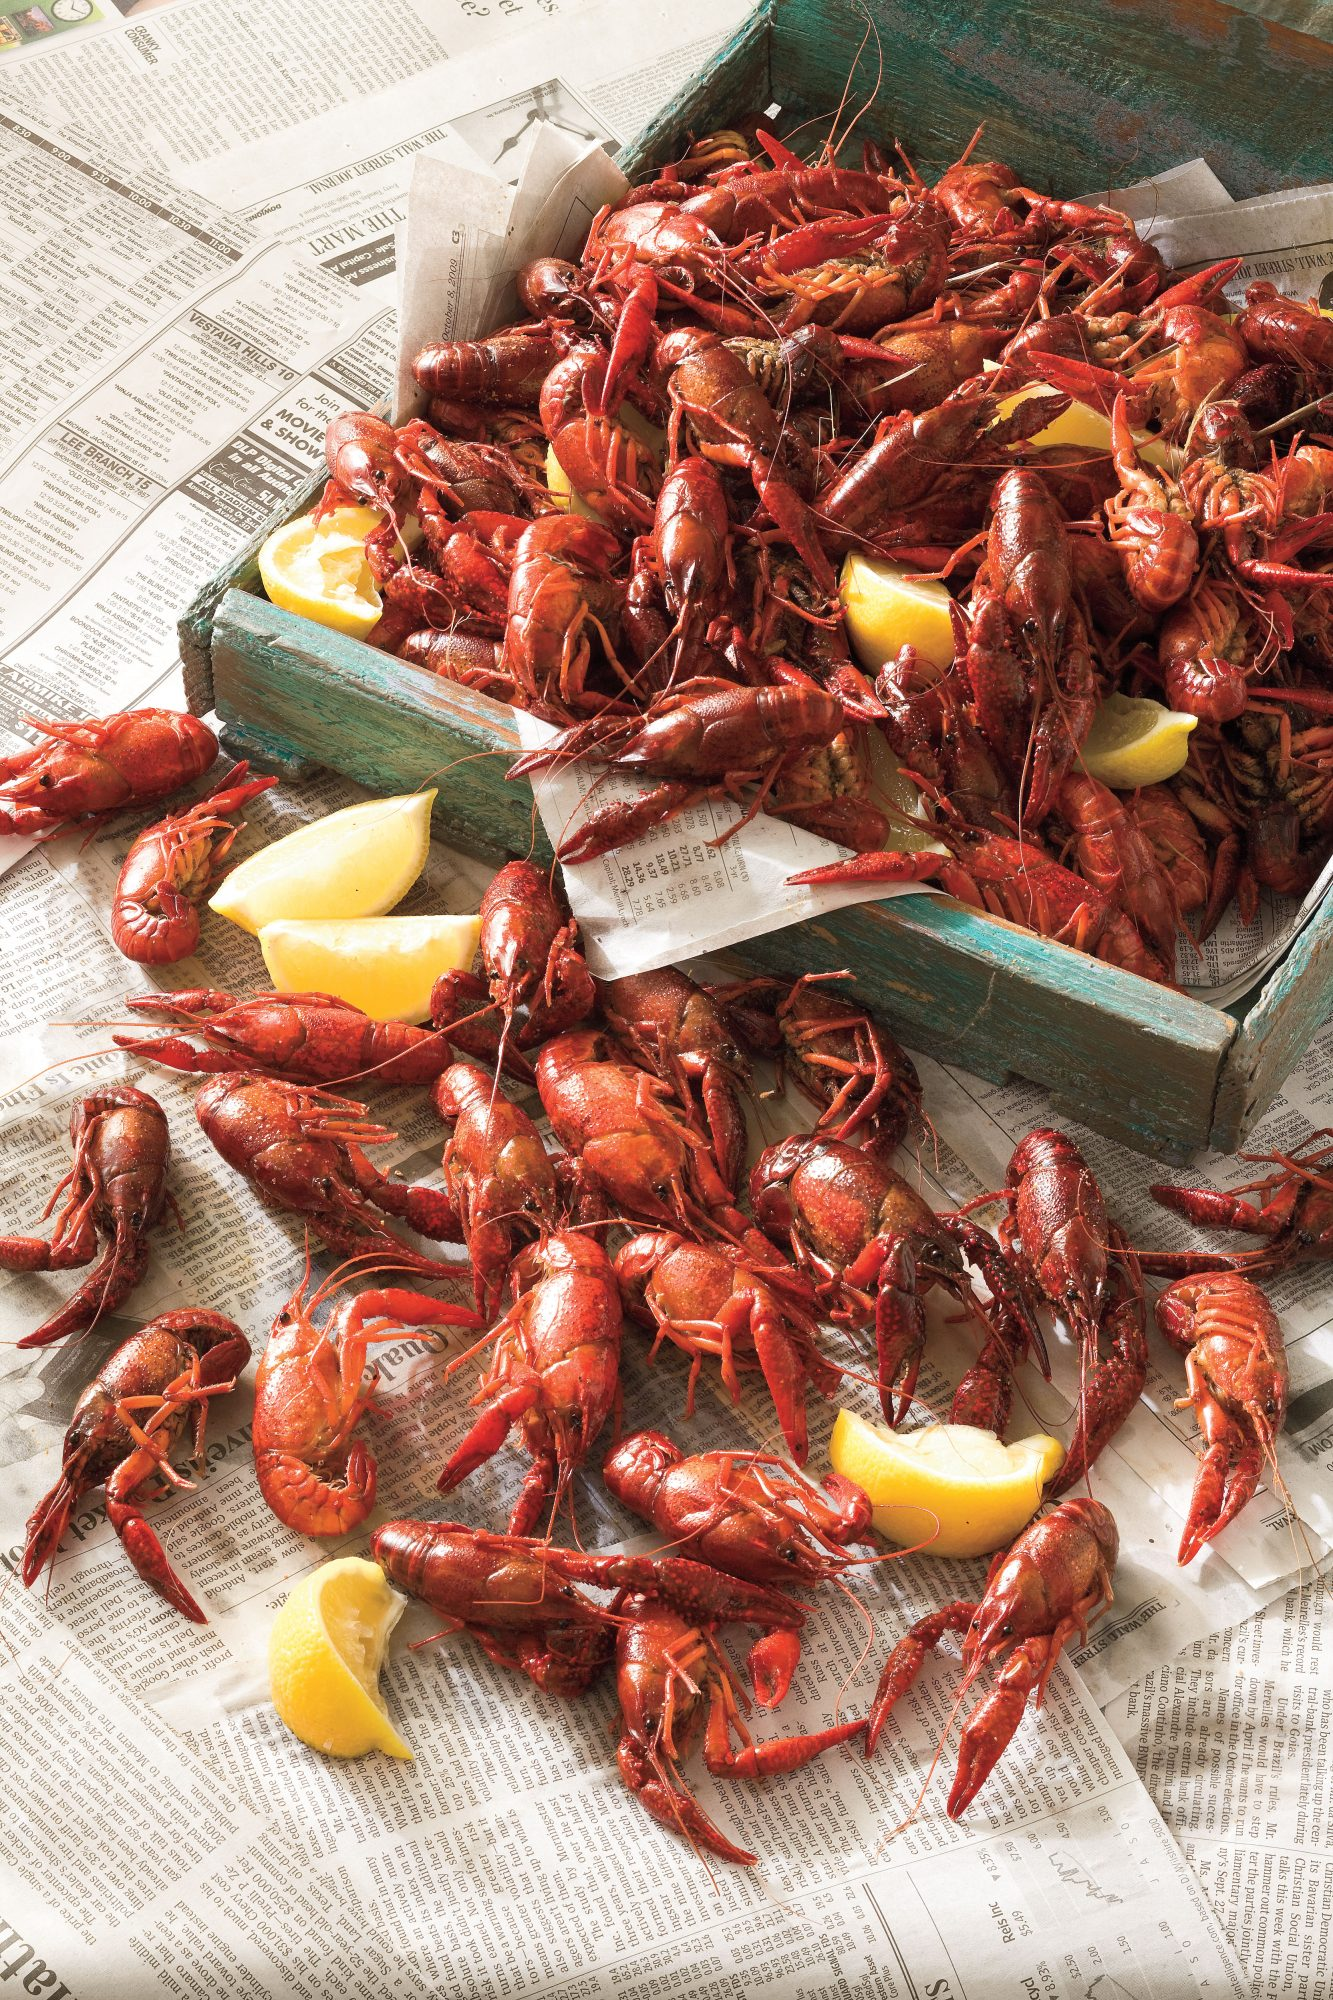 How To Eat Boiled Crawfish: 5-Star Recipes